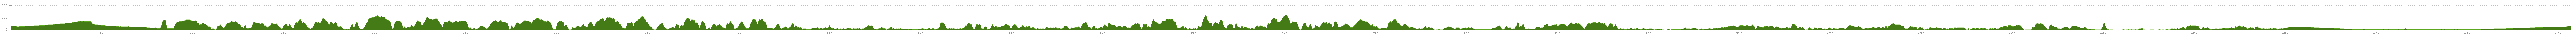 Elevation profile Cycle Tour Brittany